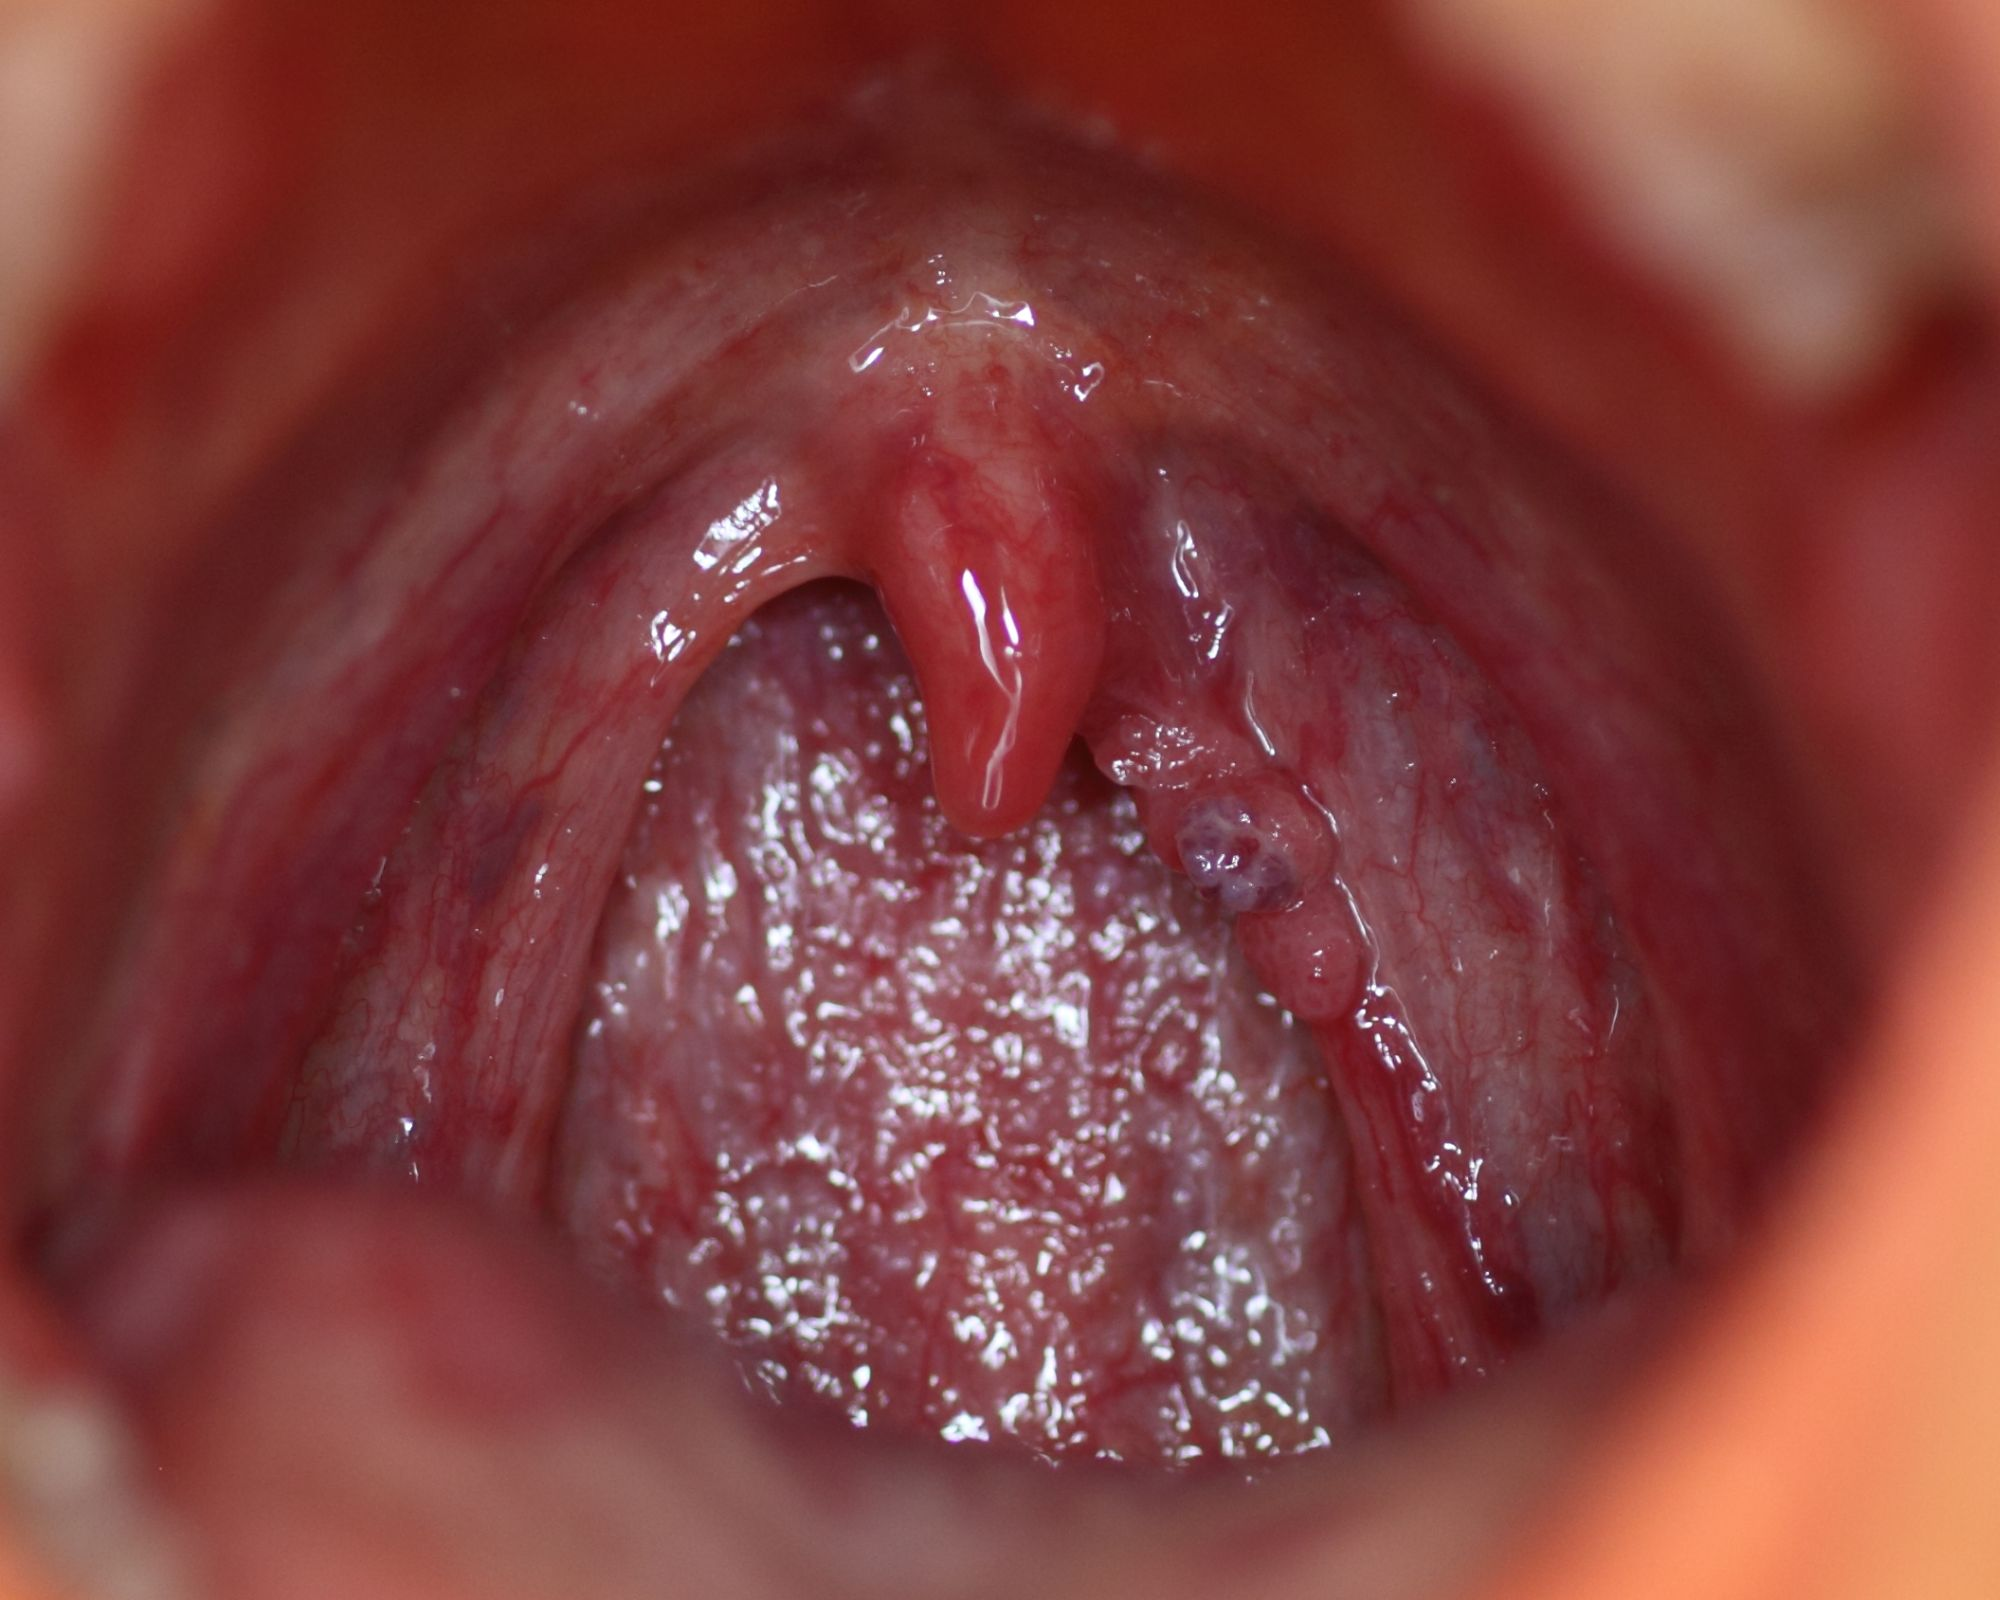 warts and throat cancer)